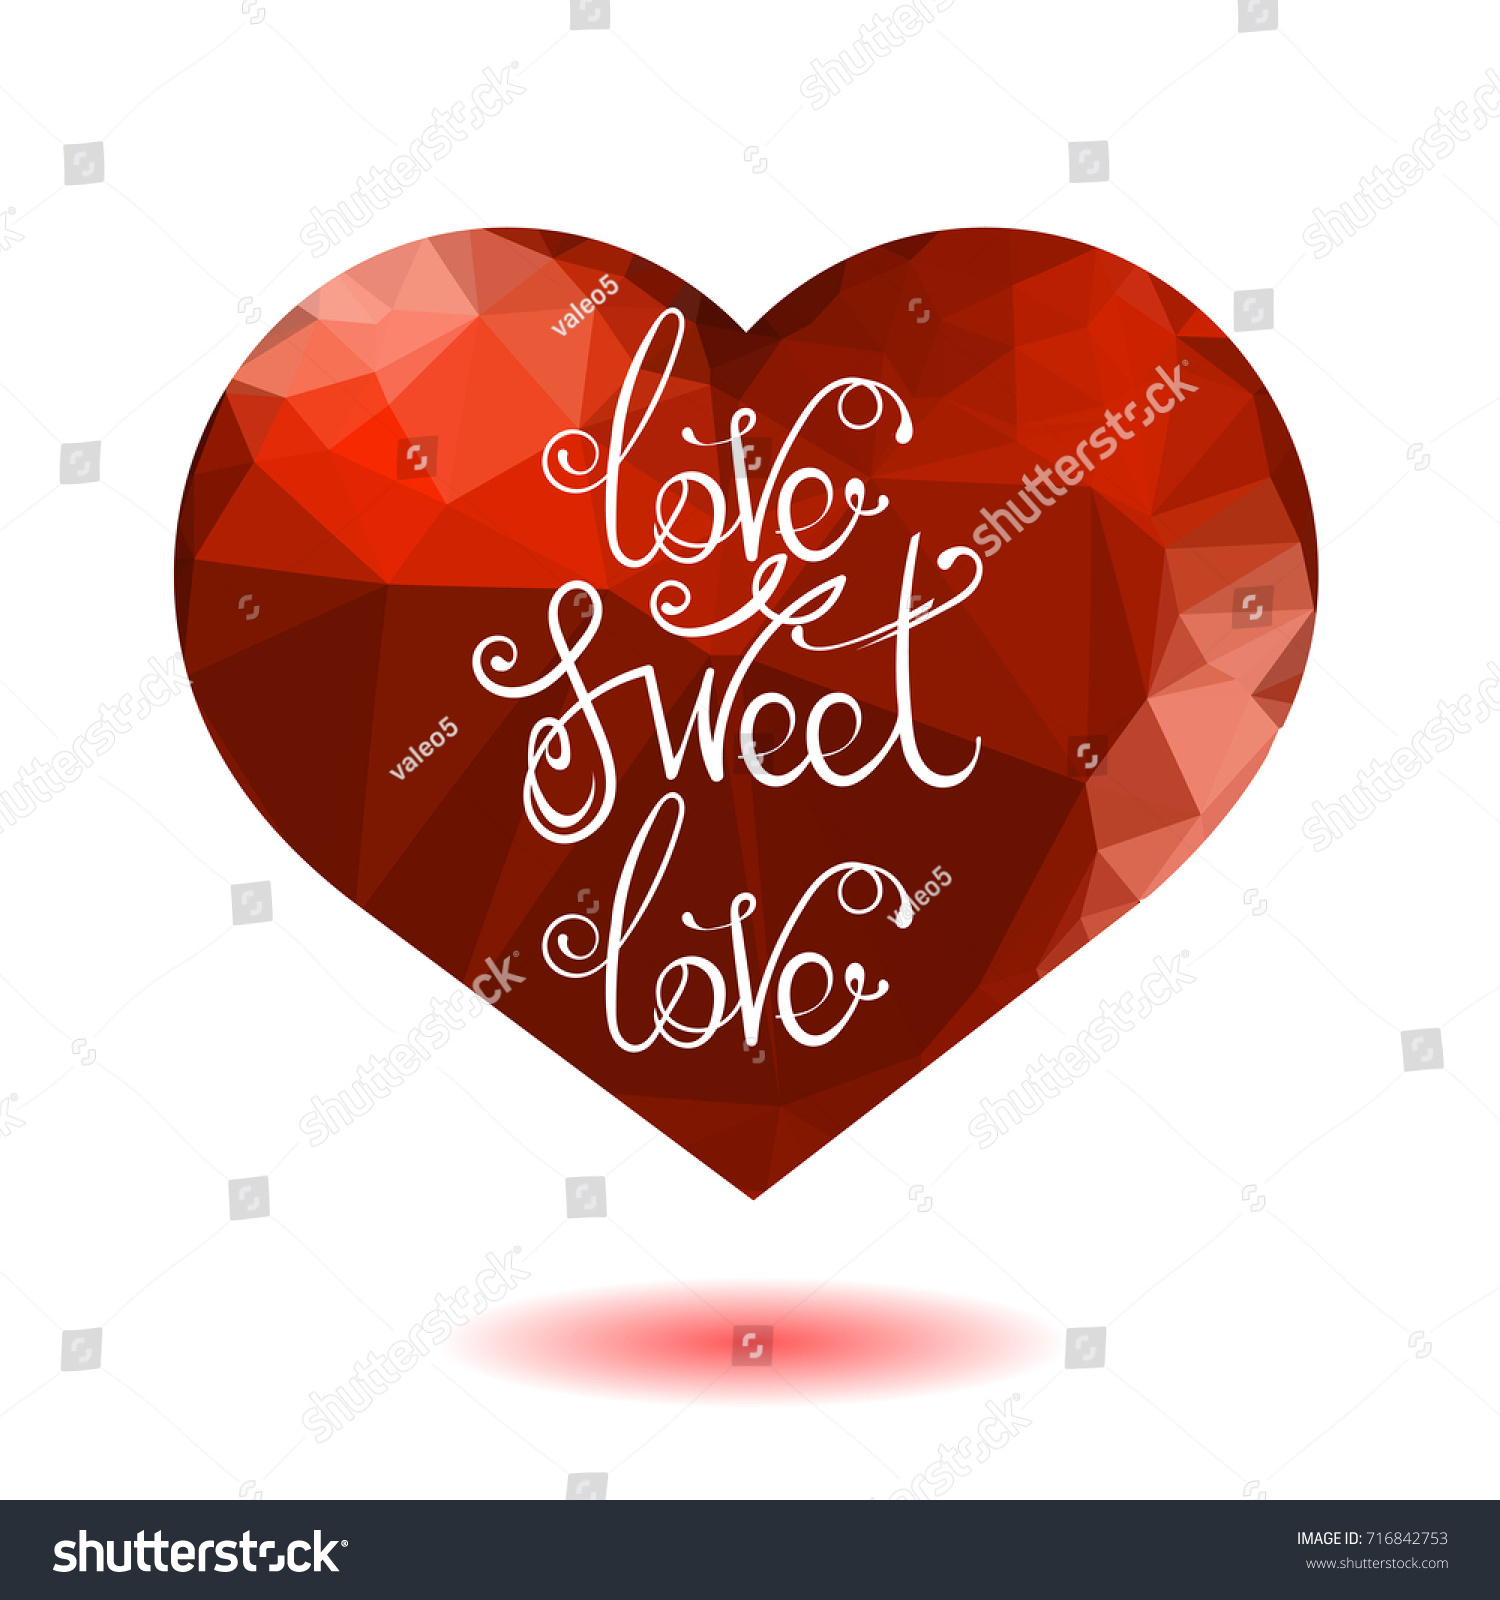 Elegant Vector Vintage Hand Lettering Isolated On Red Heart Background. Romantic  Love Quote Design